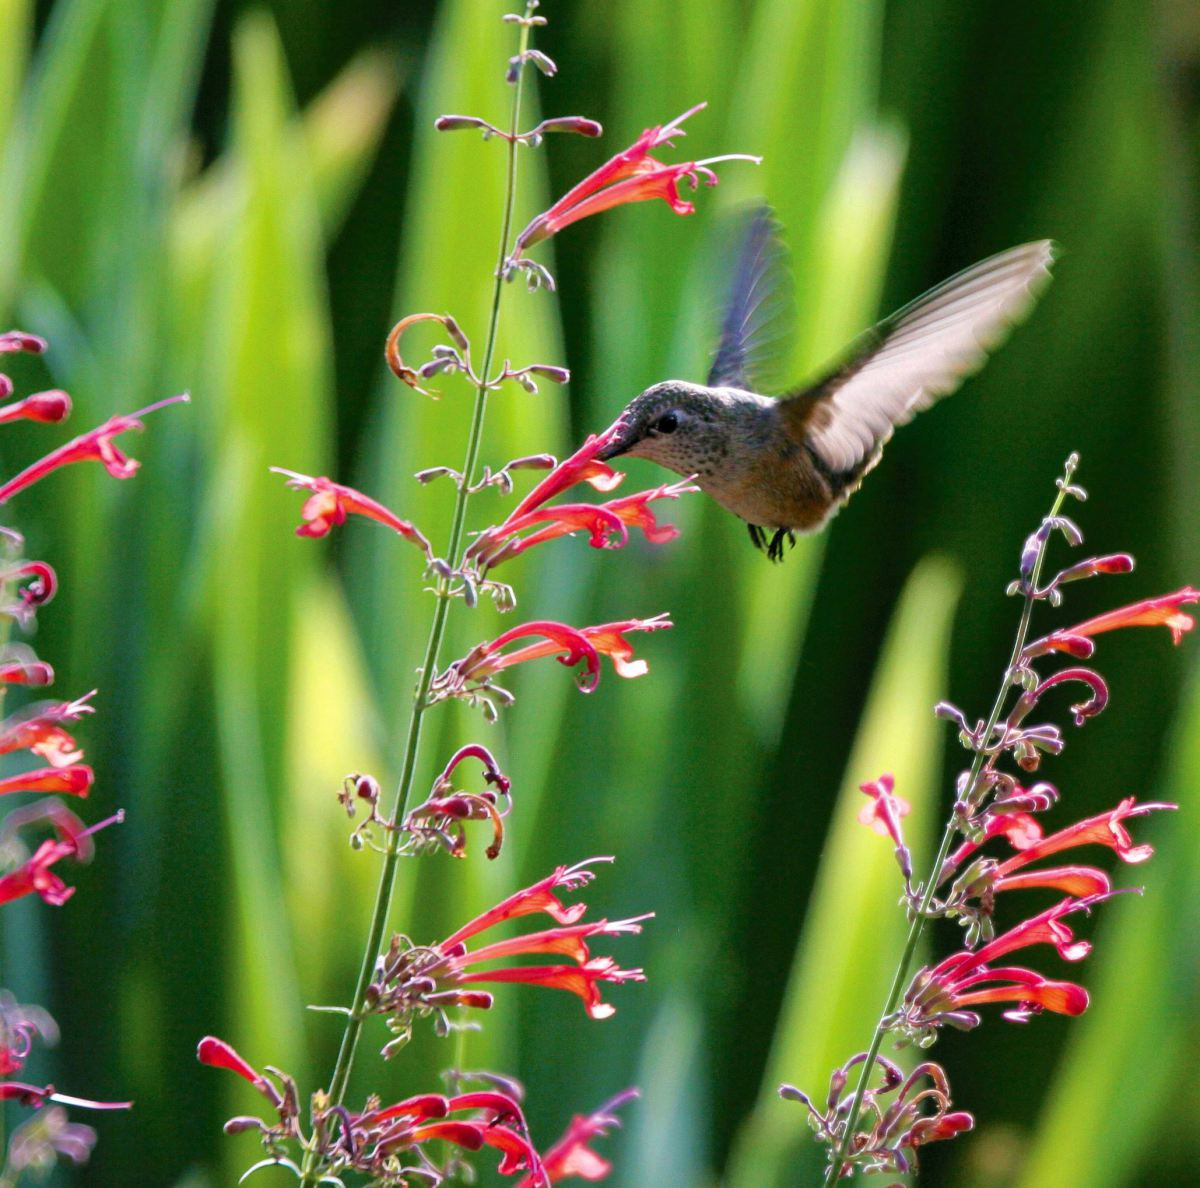 Wshg Gardening To Attract Hummingbirds And Butterflies